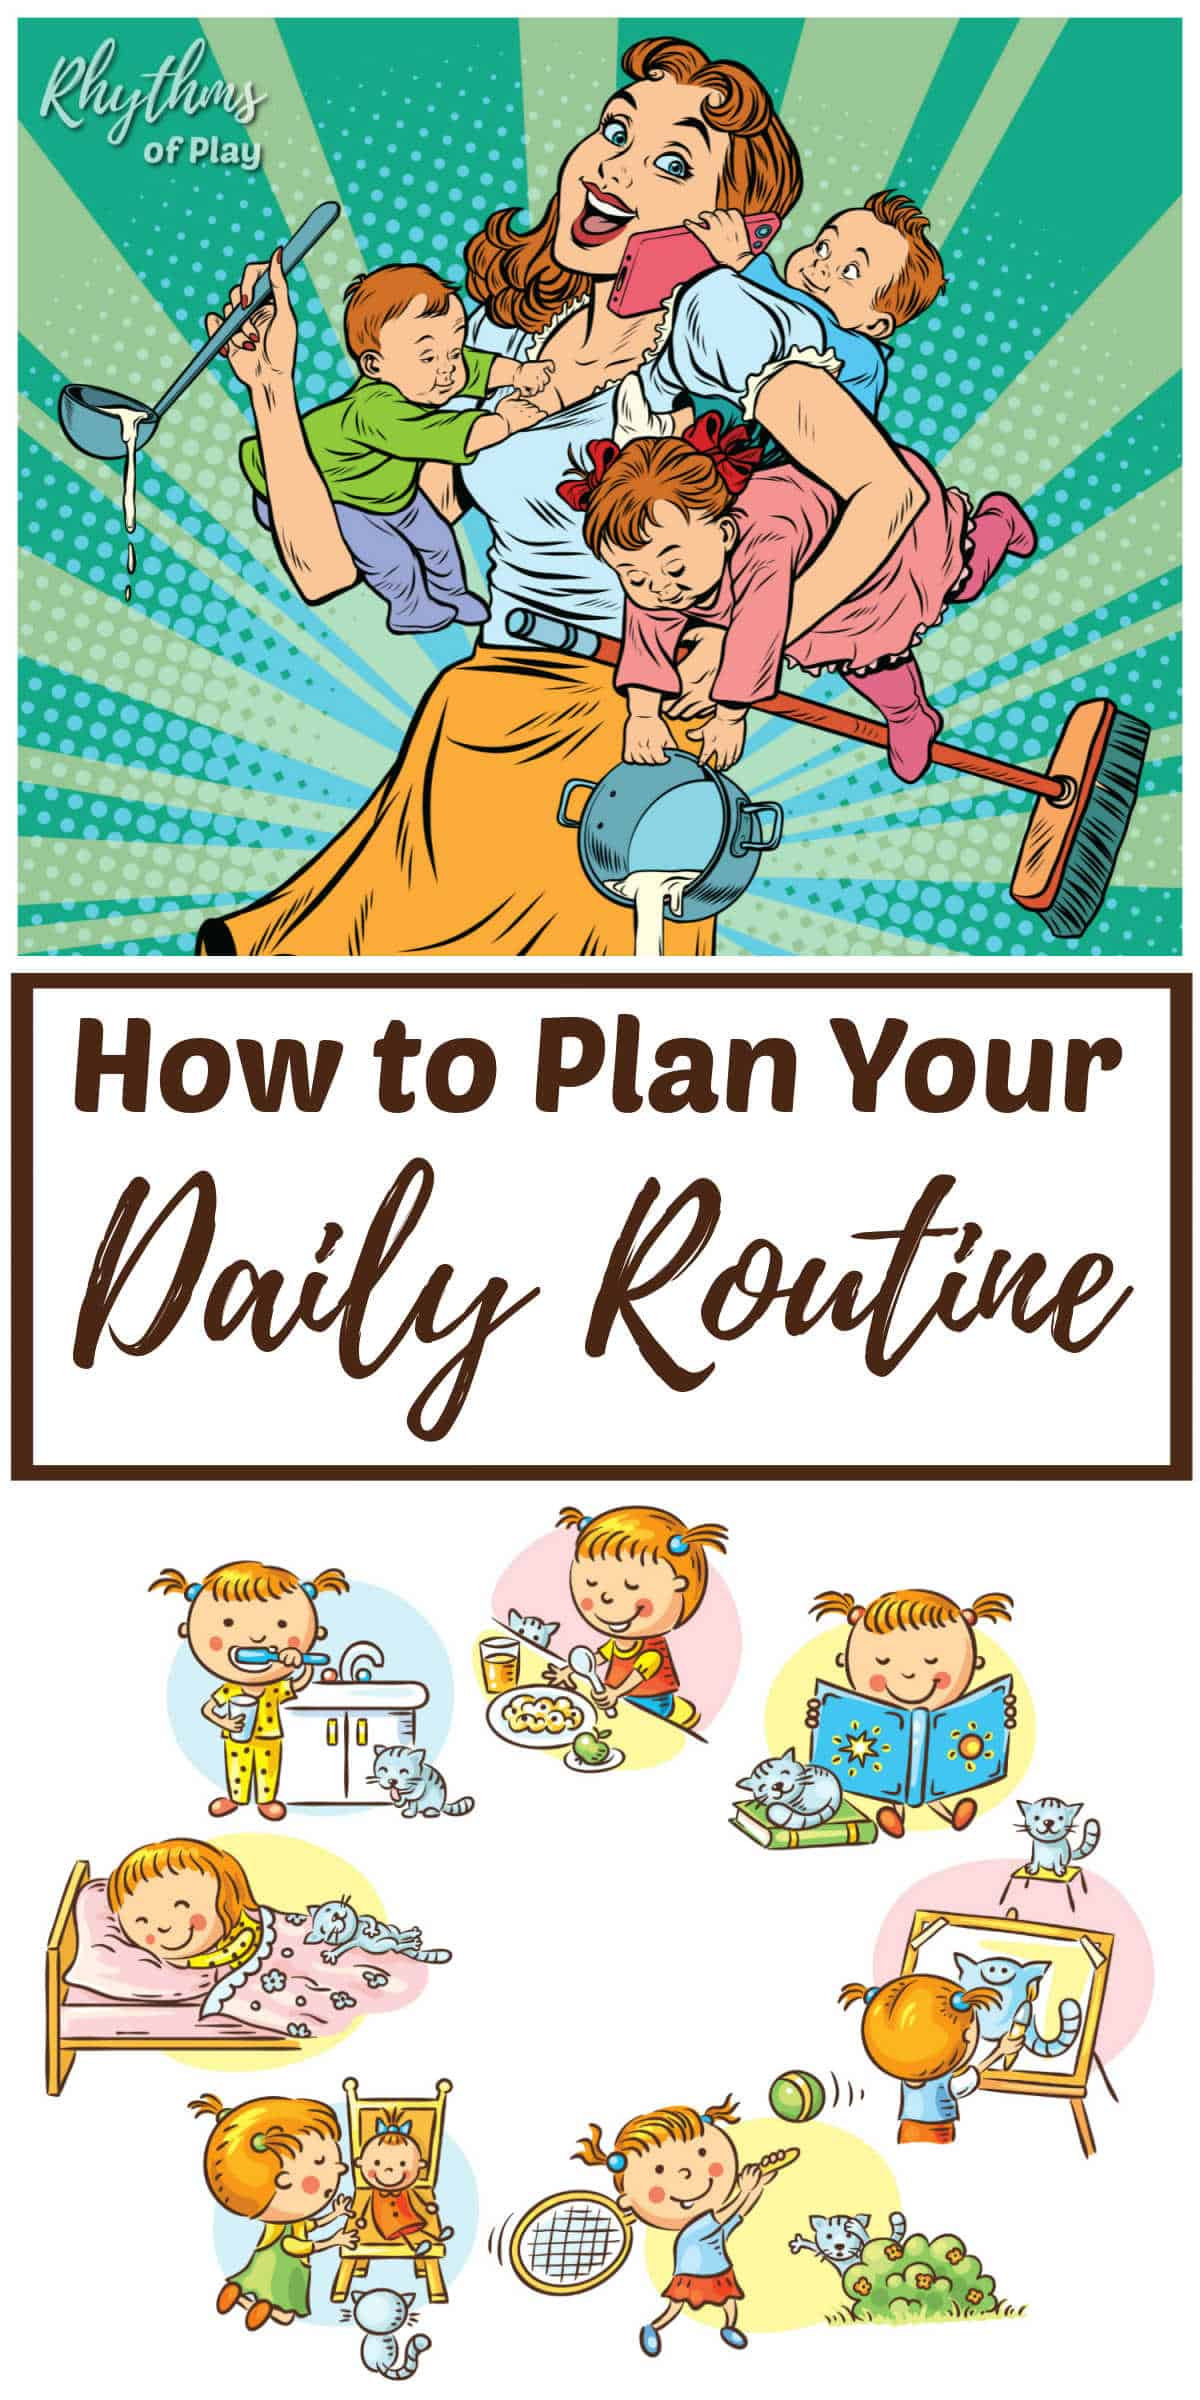 Waldorf daily rhythm or daily routine tips for parents, caregivers and educators